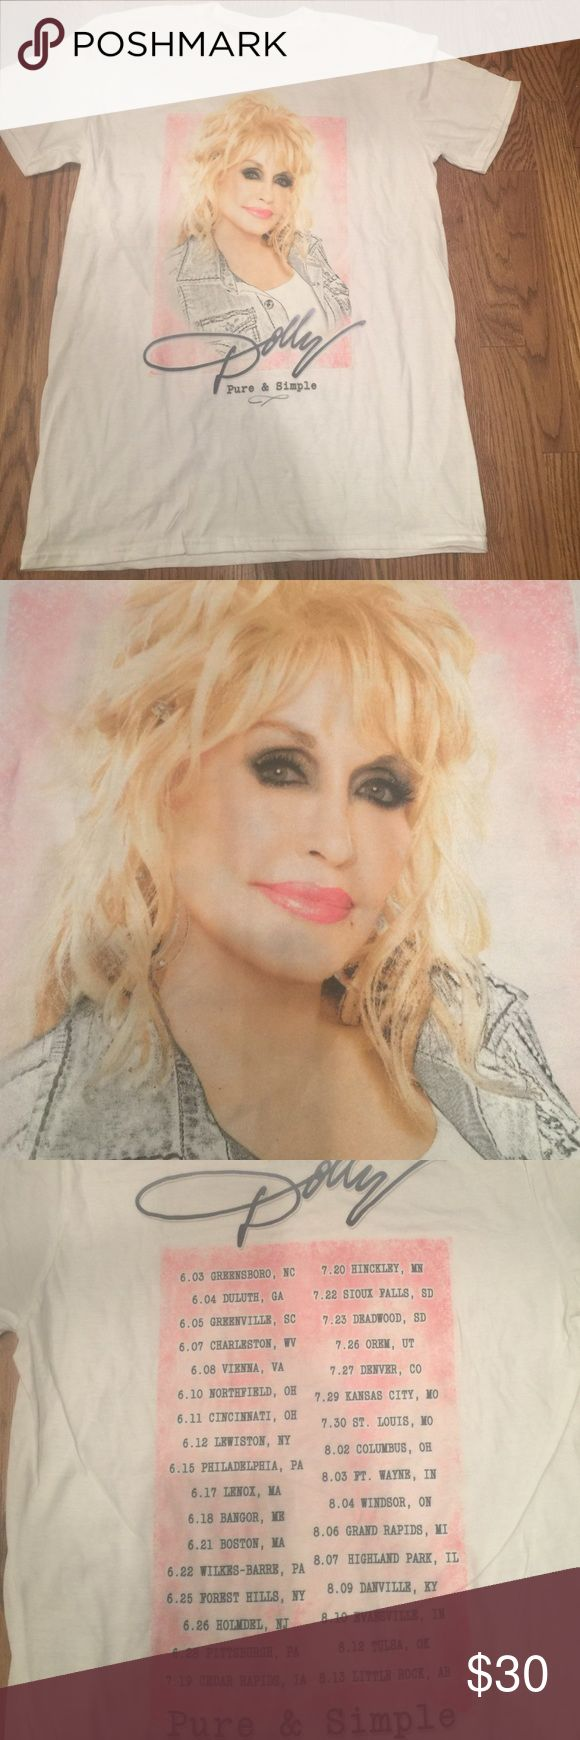 Dolly Parton Concert T Shirt 2016 Dolly Parton Concert T Shirt.  Never worn. Tops Tees - Short Sleeve